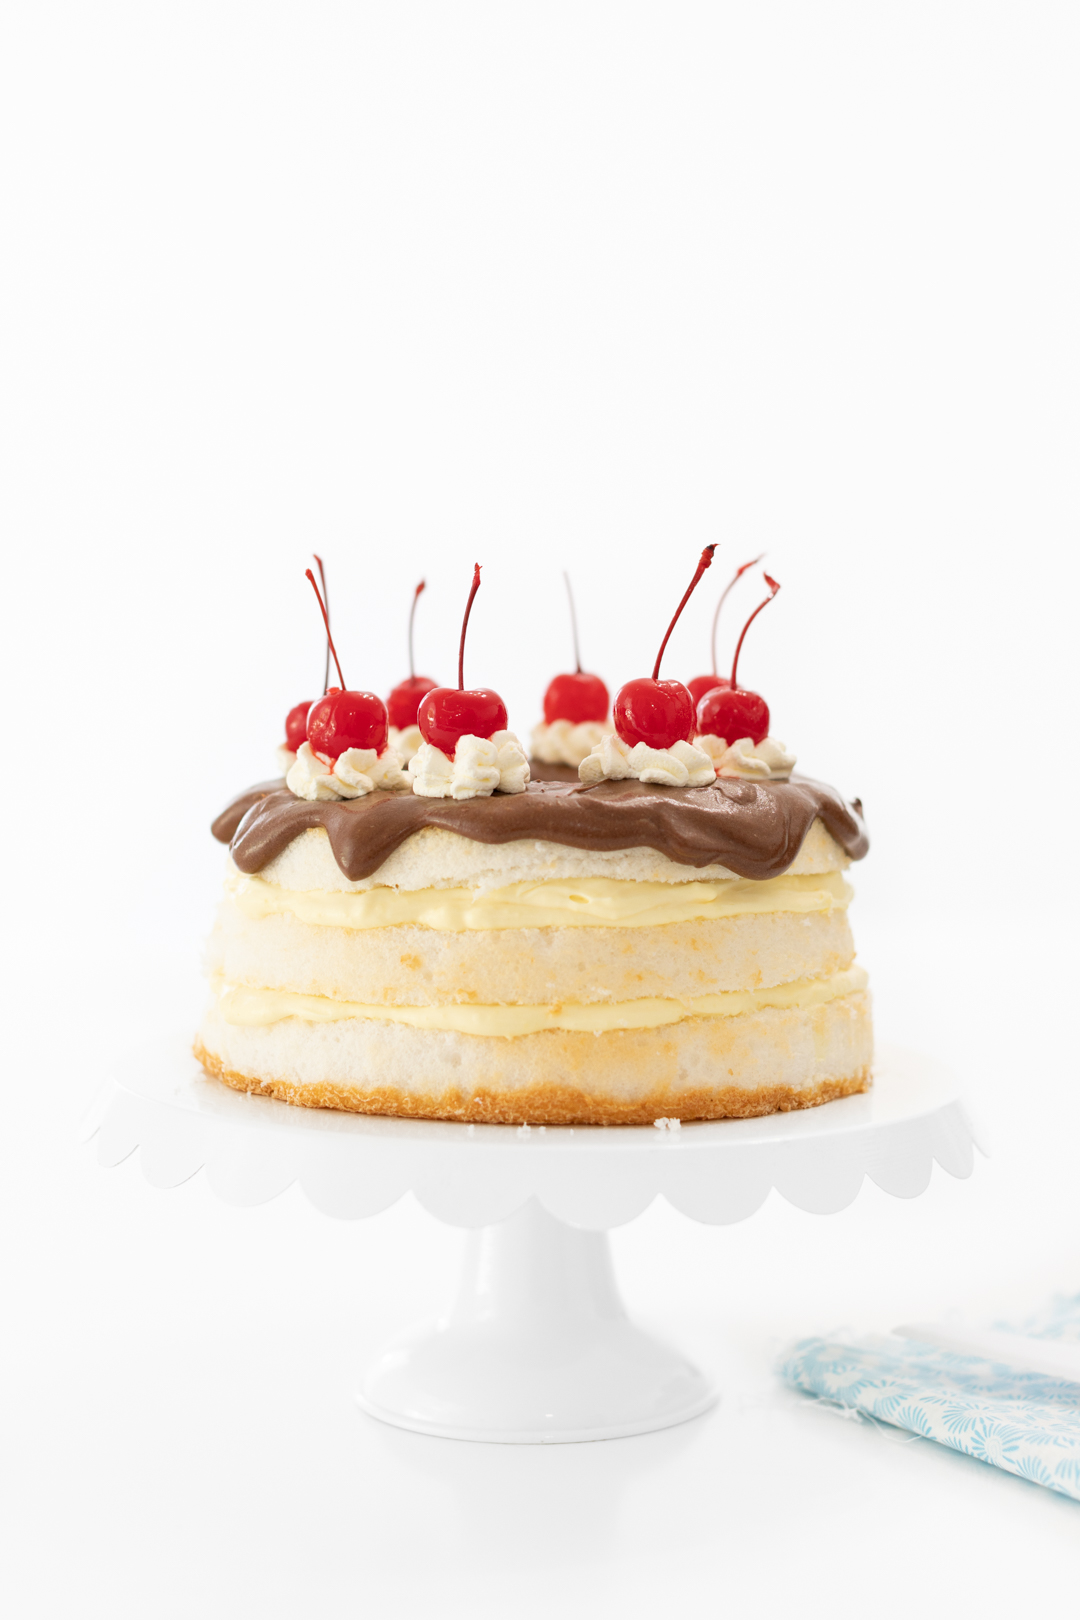 Boston Cream Pie That is Easy To Make. Topped with Cherries.